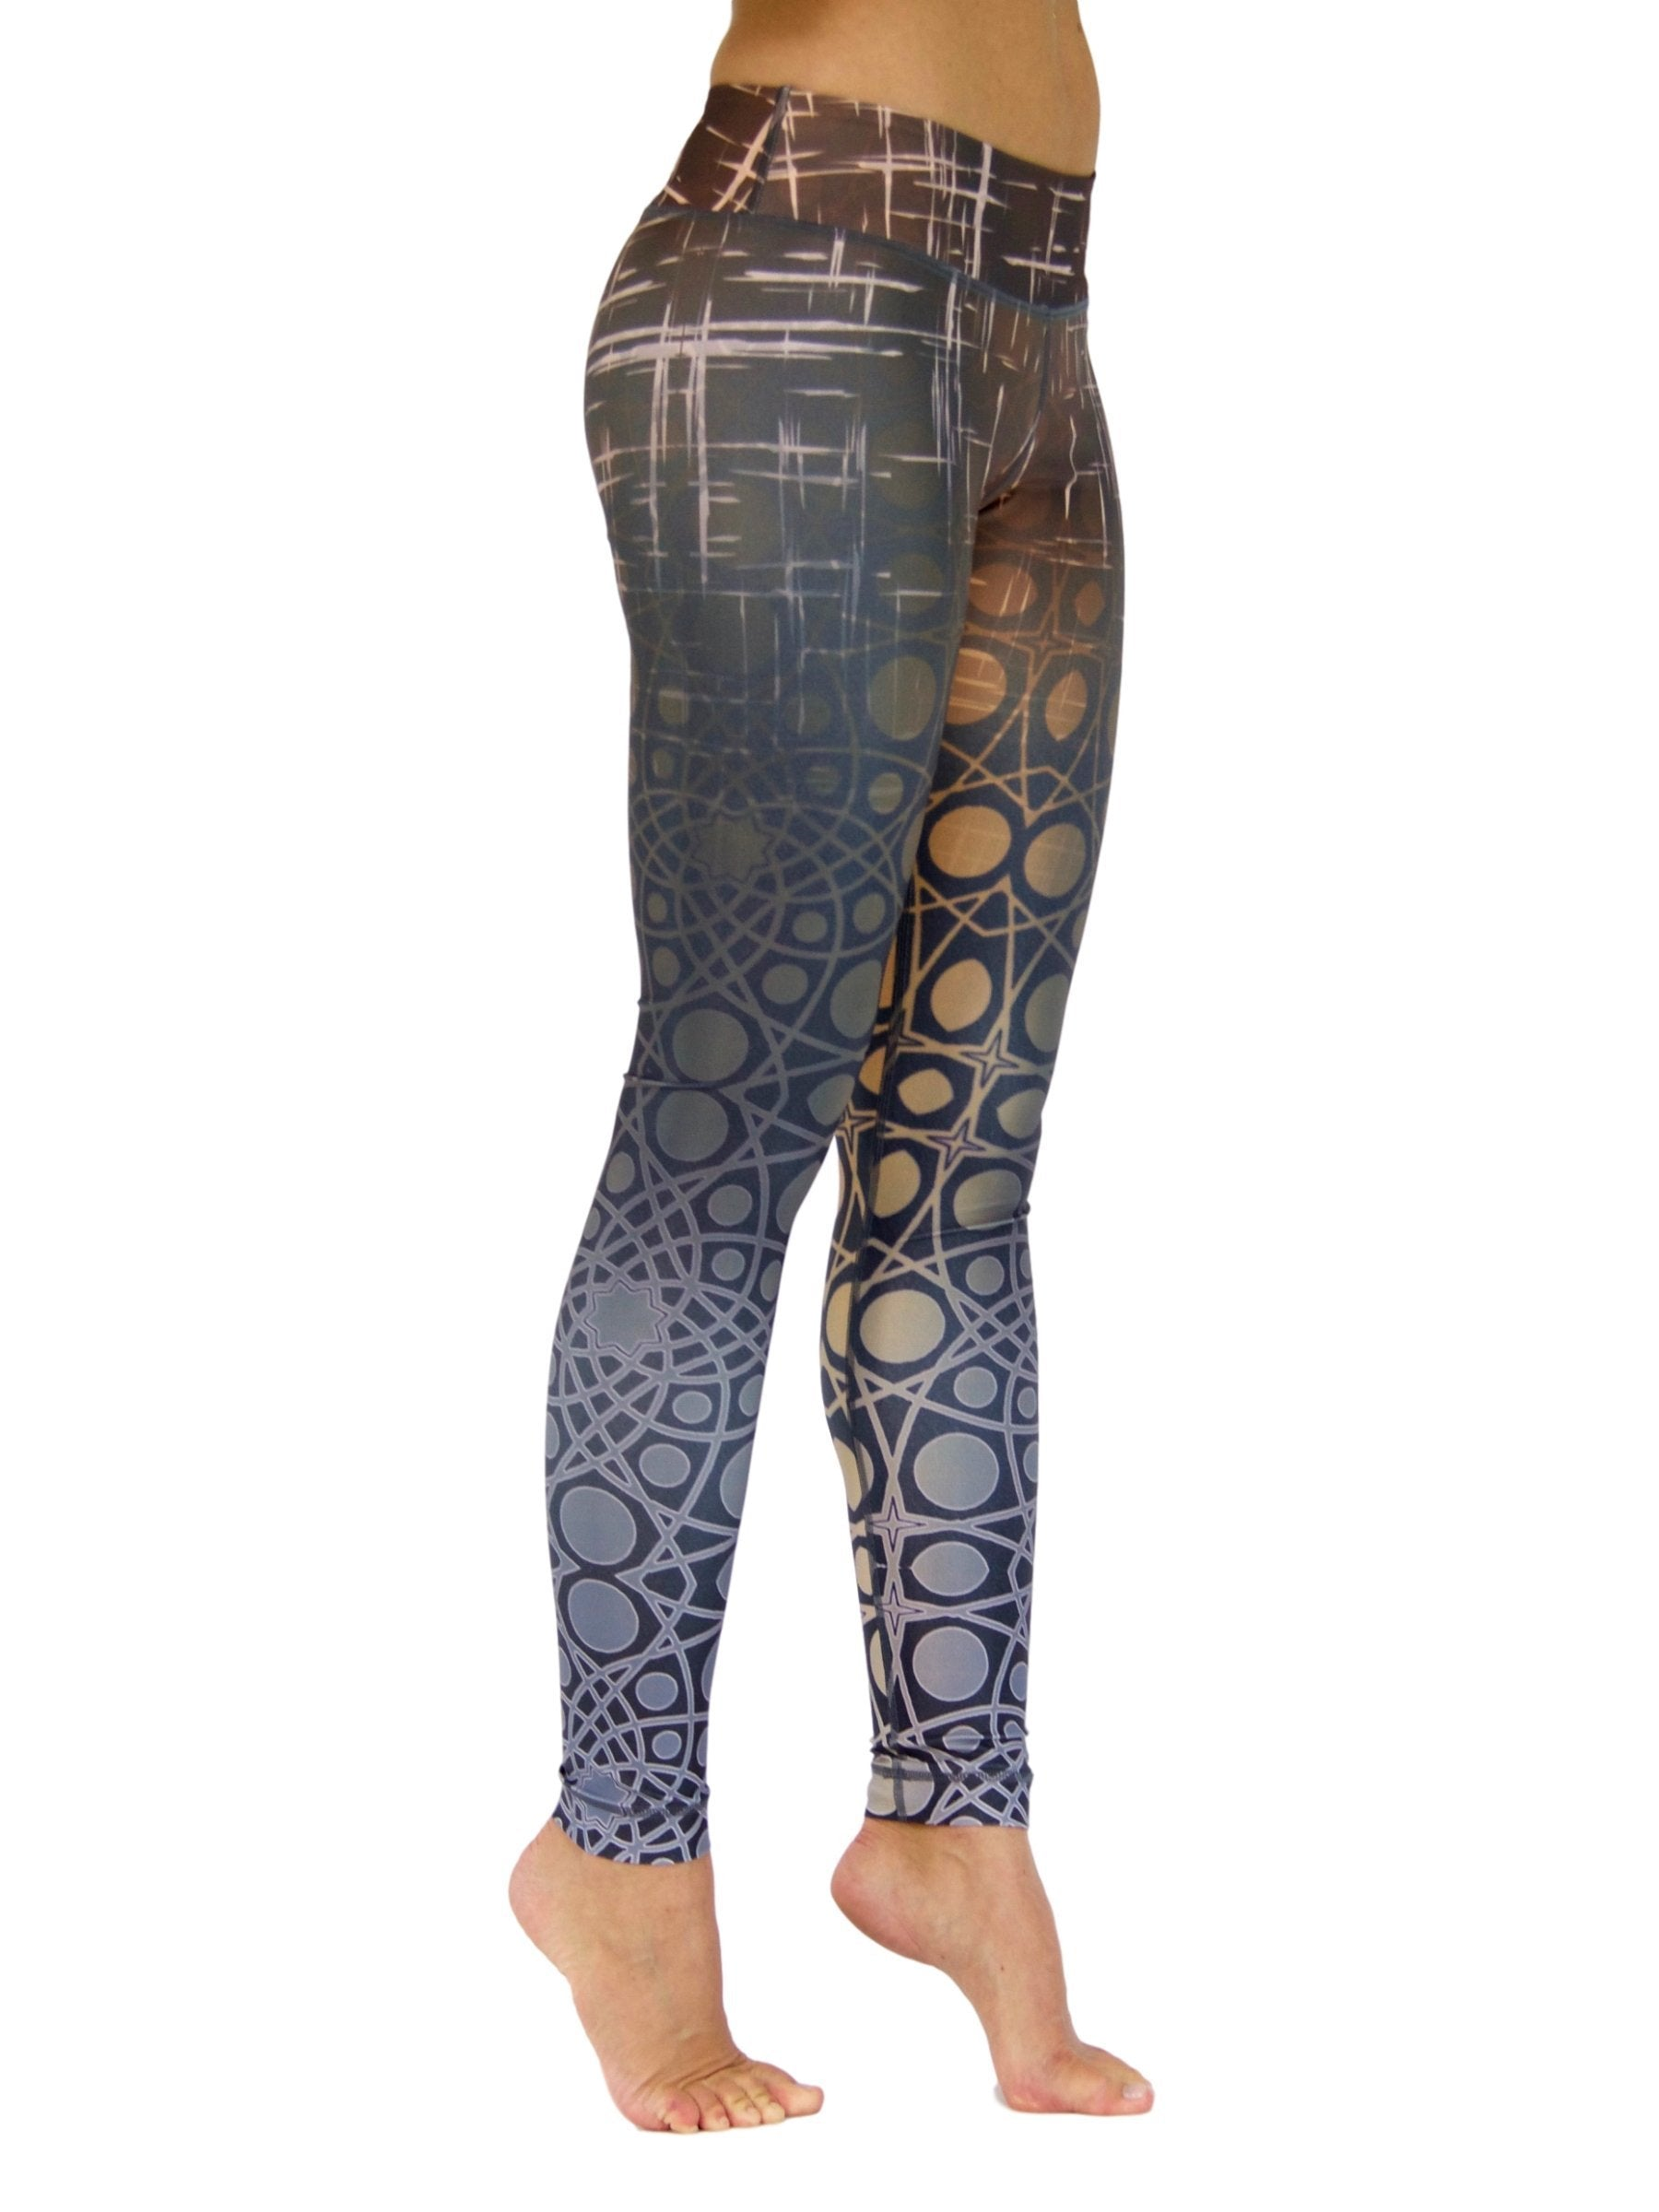 Retro Rush by Niyama - High Quality, , Yoga Legging for Movement Artists.